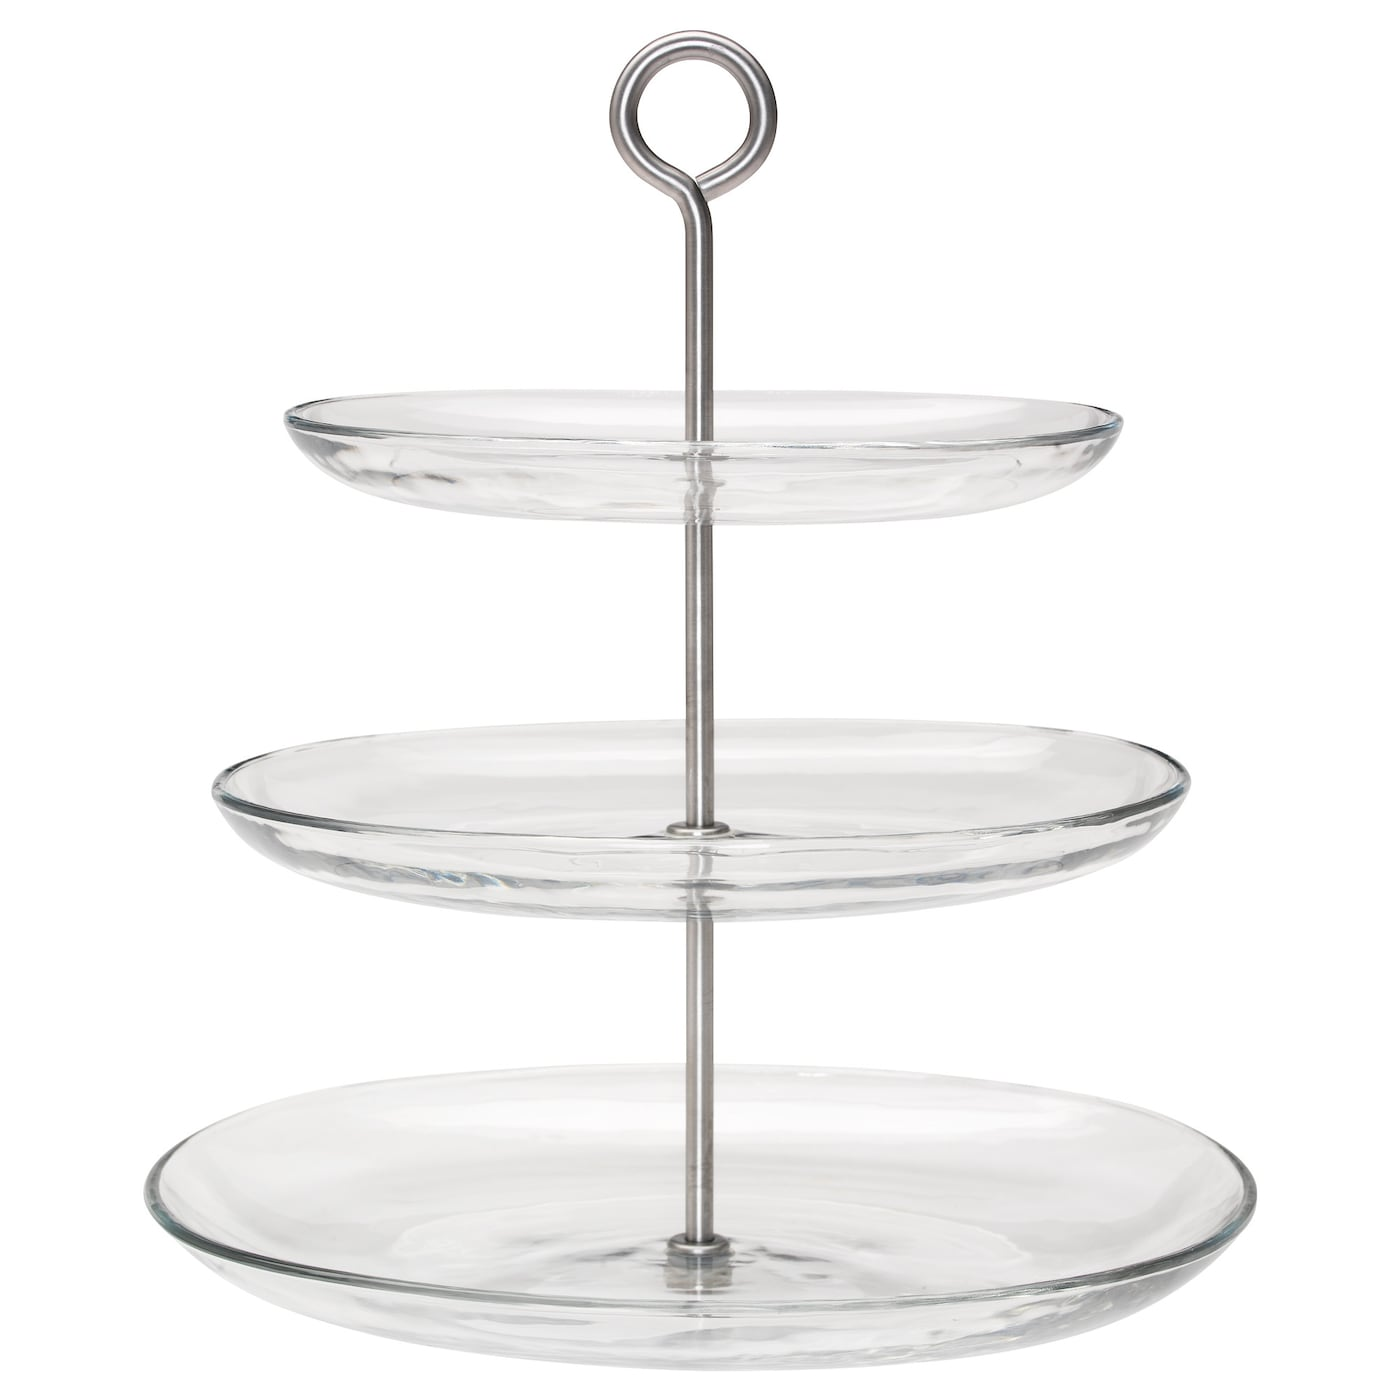 kvittera serving stand three tiers clear glass stainless steel ikea. Black Bedroom Furniture Sets. Home Design Ideas